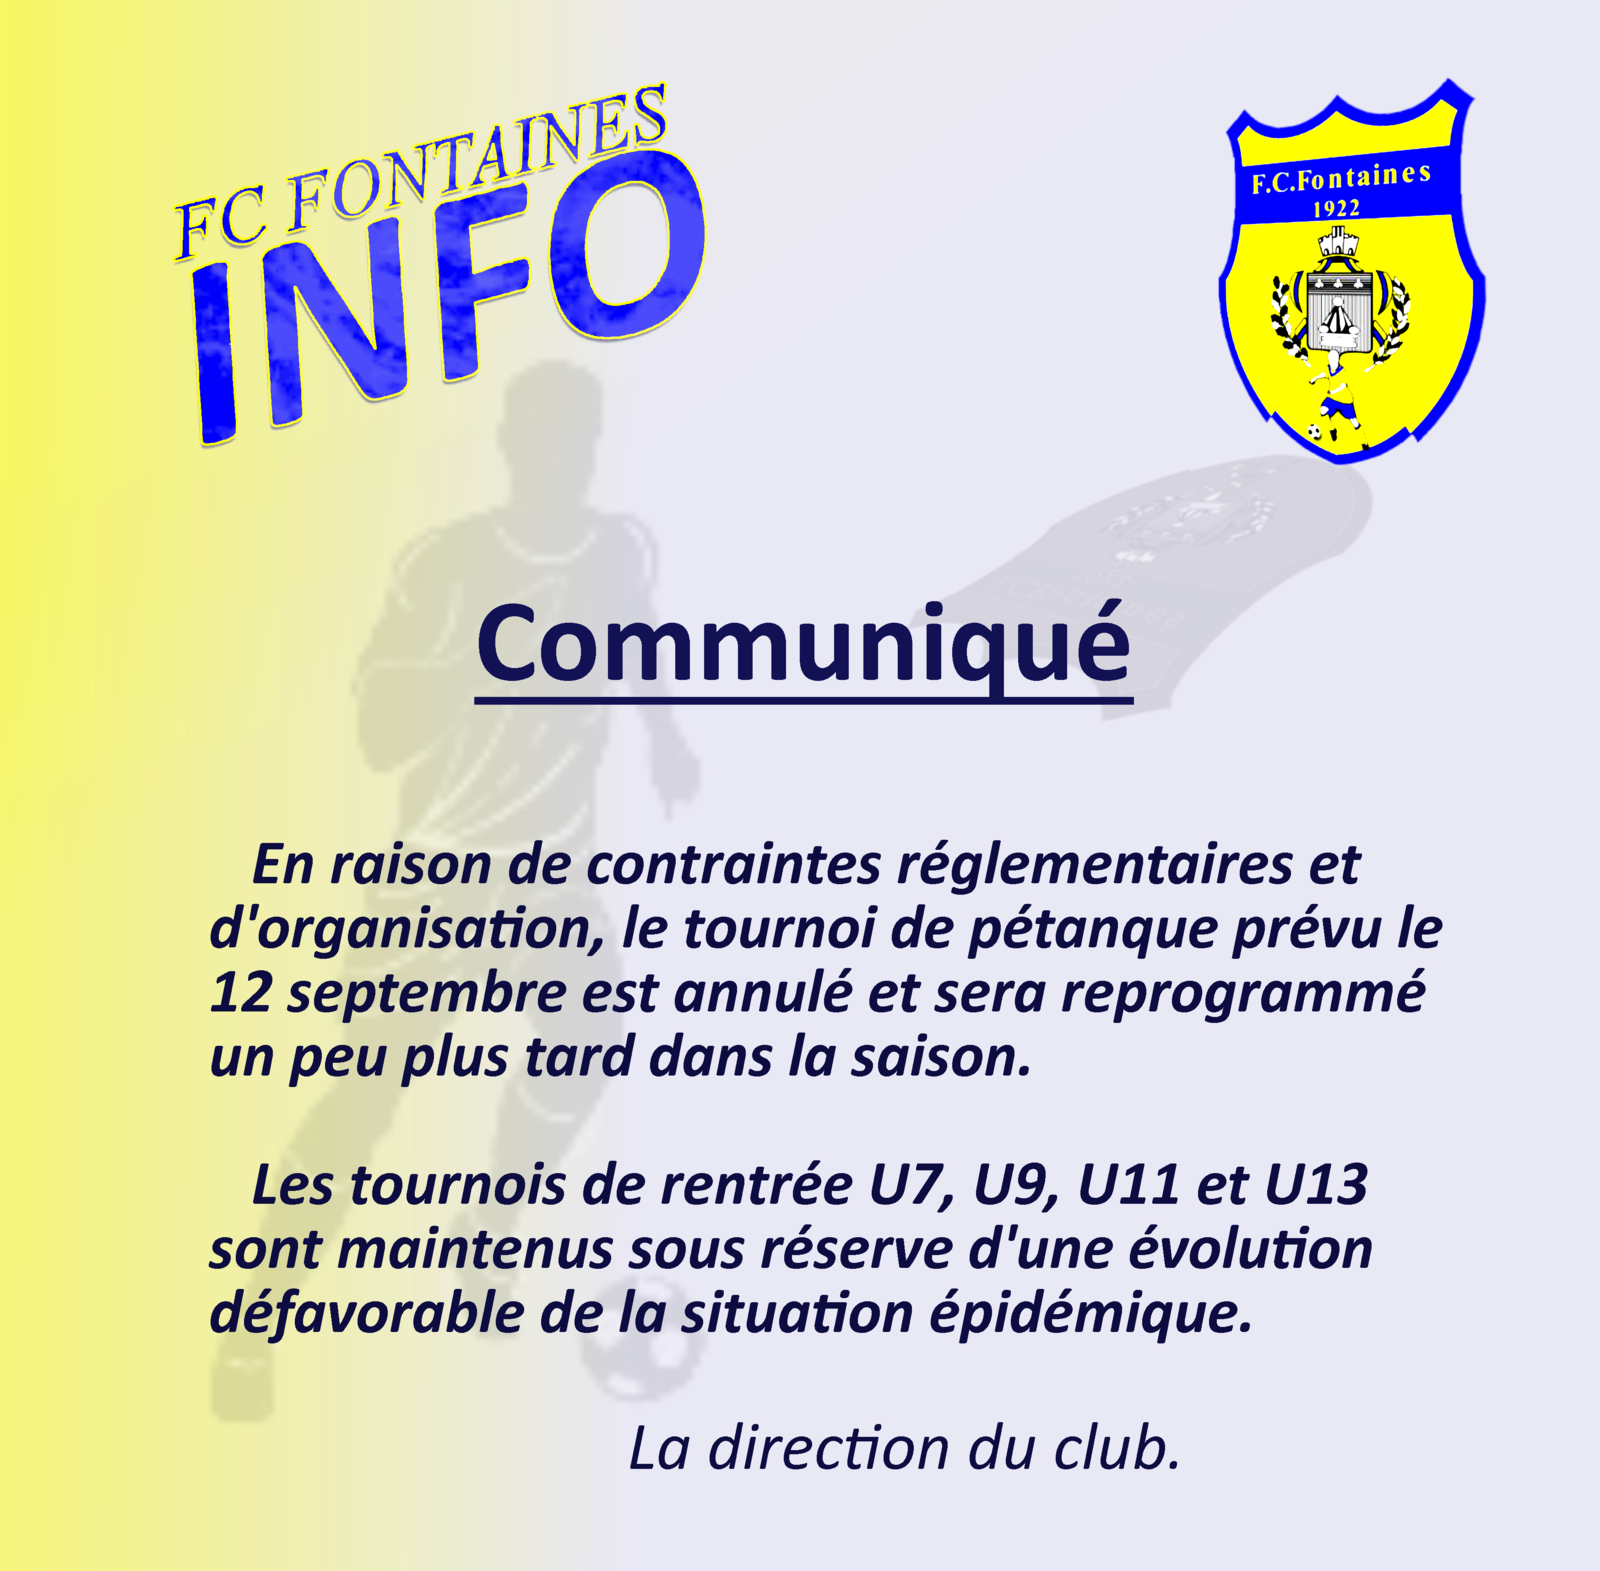 FC. FONTAINES